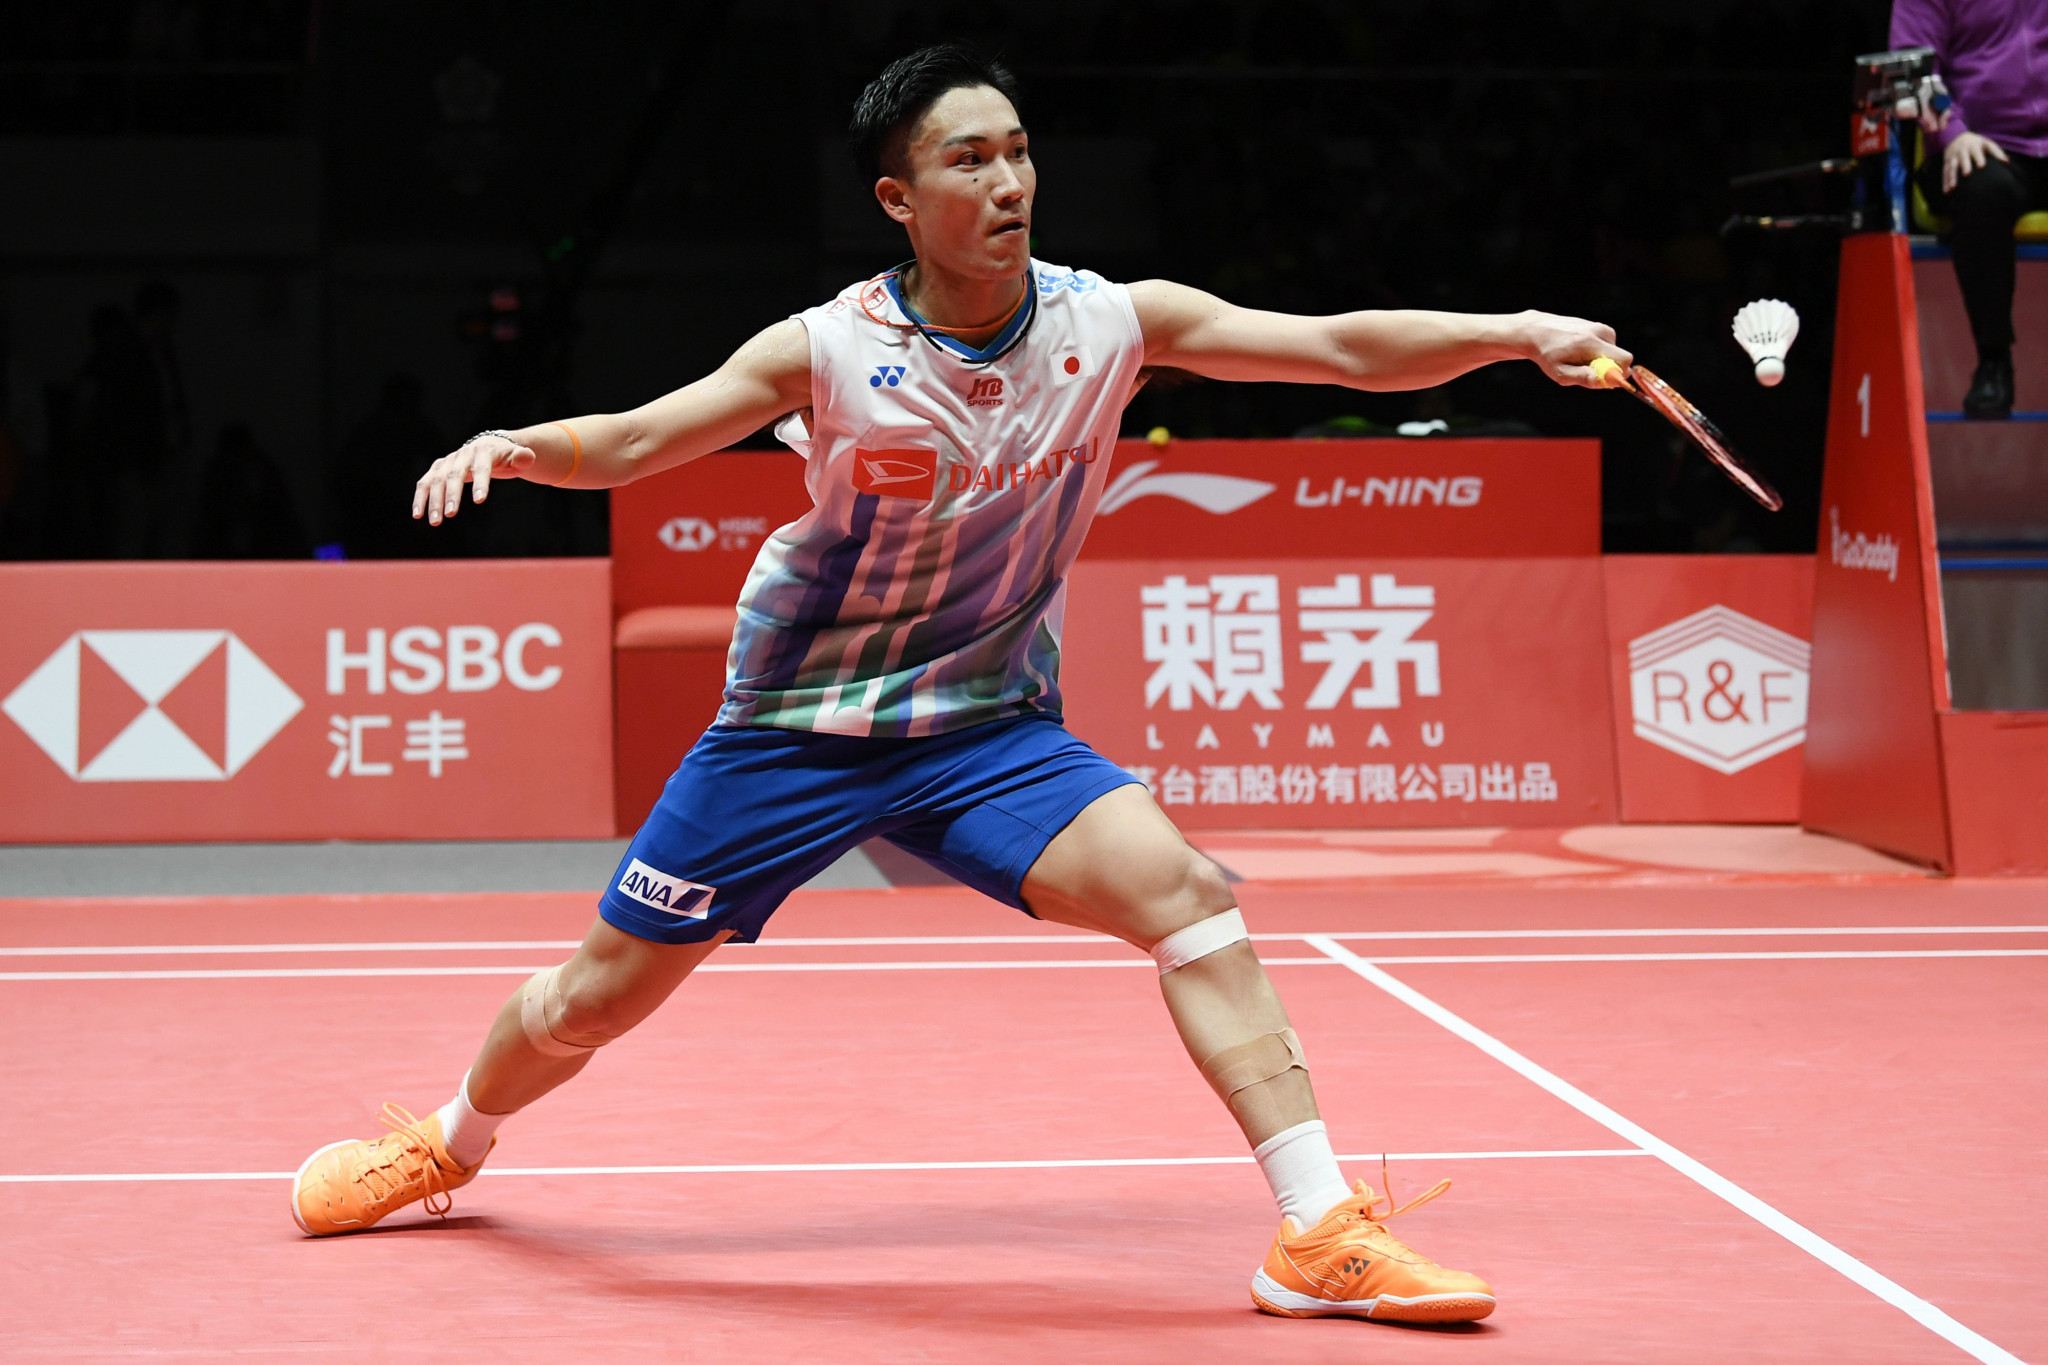 Japan's Kento Momota enters the Yonex German Open as the top seed in the men's singles ©Getty Images